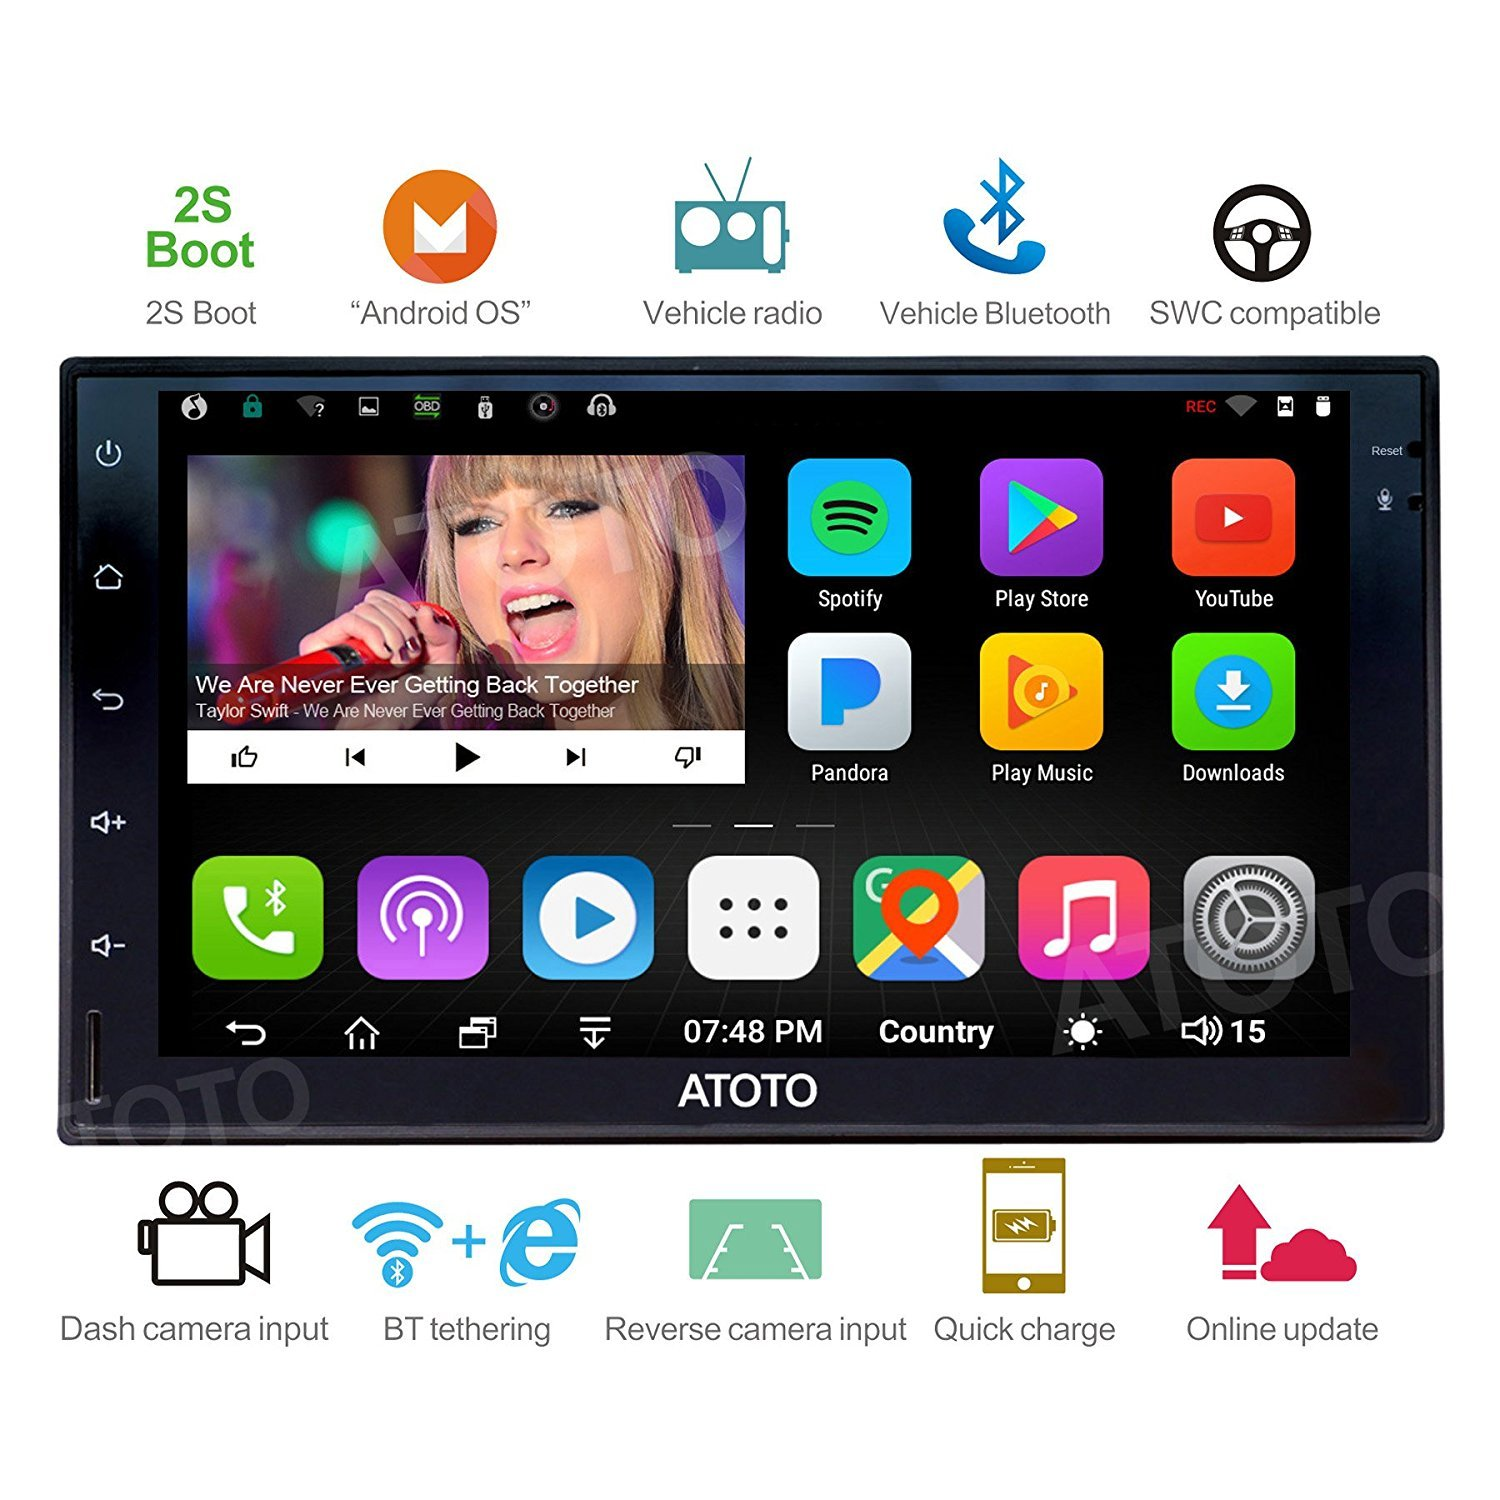 [NEW] ATOTO A6 2DIN Android Car Navigation Stereo with Dual Bluetooth & 2A Charge -Premium A61721P 2G/32G Car Entertainment Multimedia Radio,WiFi/BT Tethering internet,support 256G SD &more